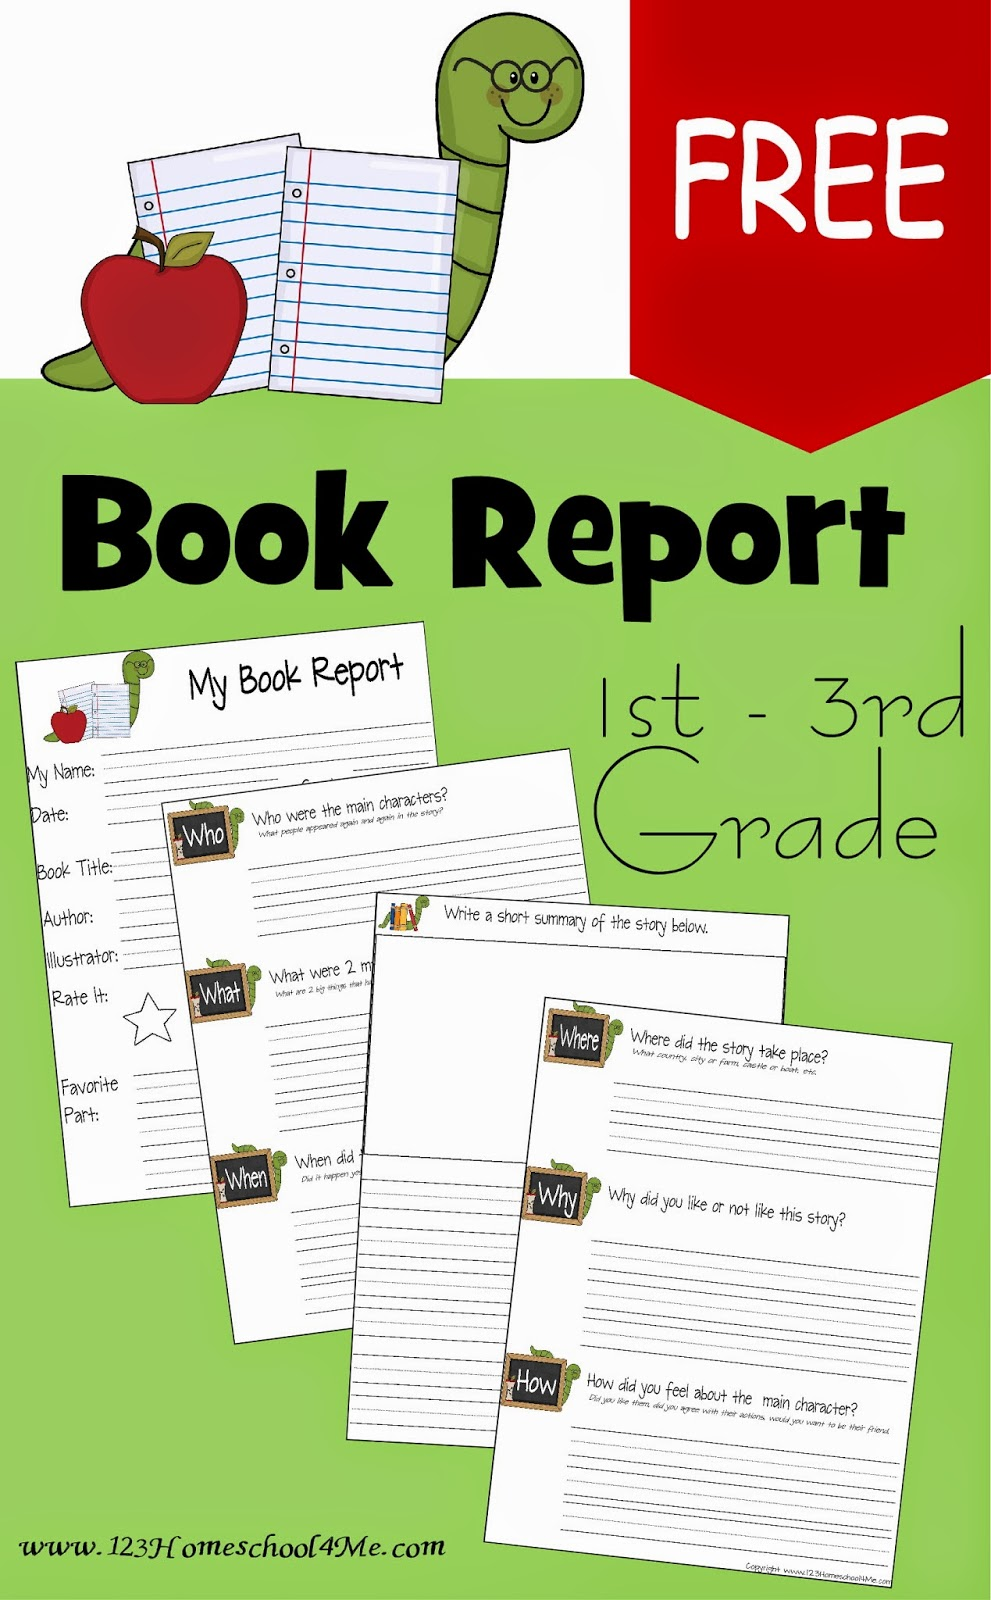 free book report template - Free Printable Books For Kids